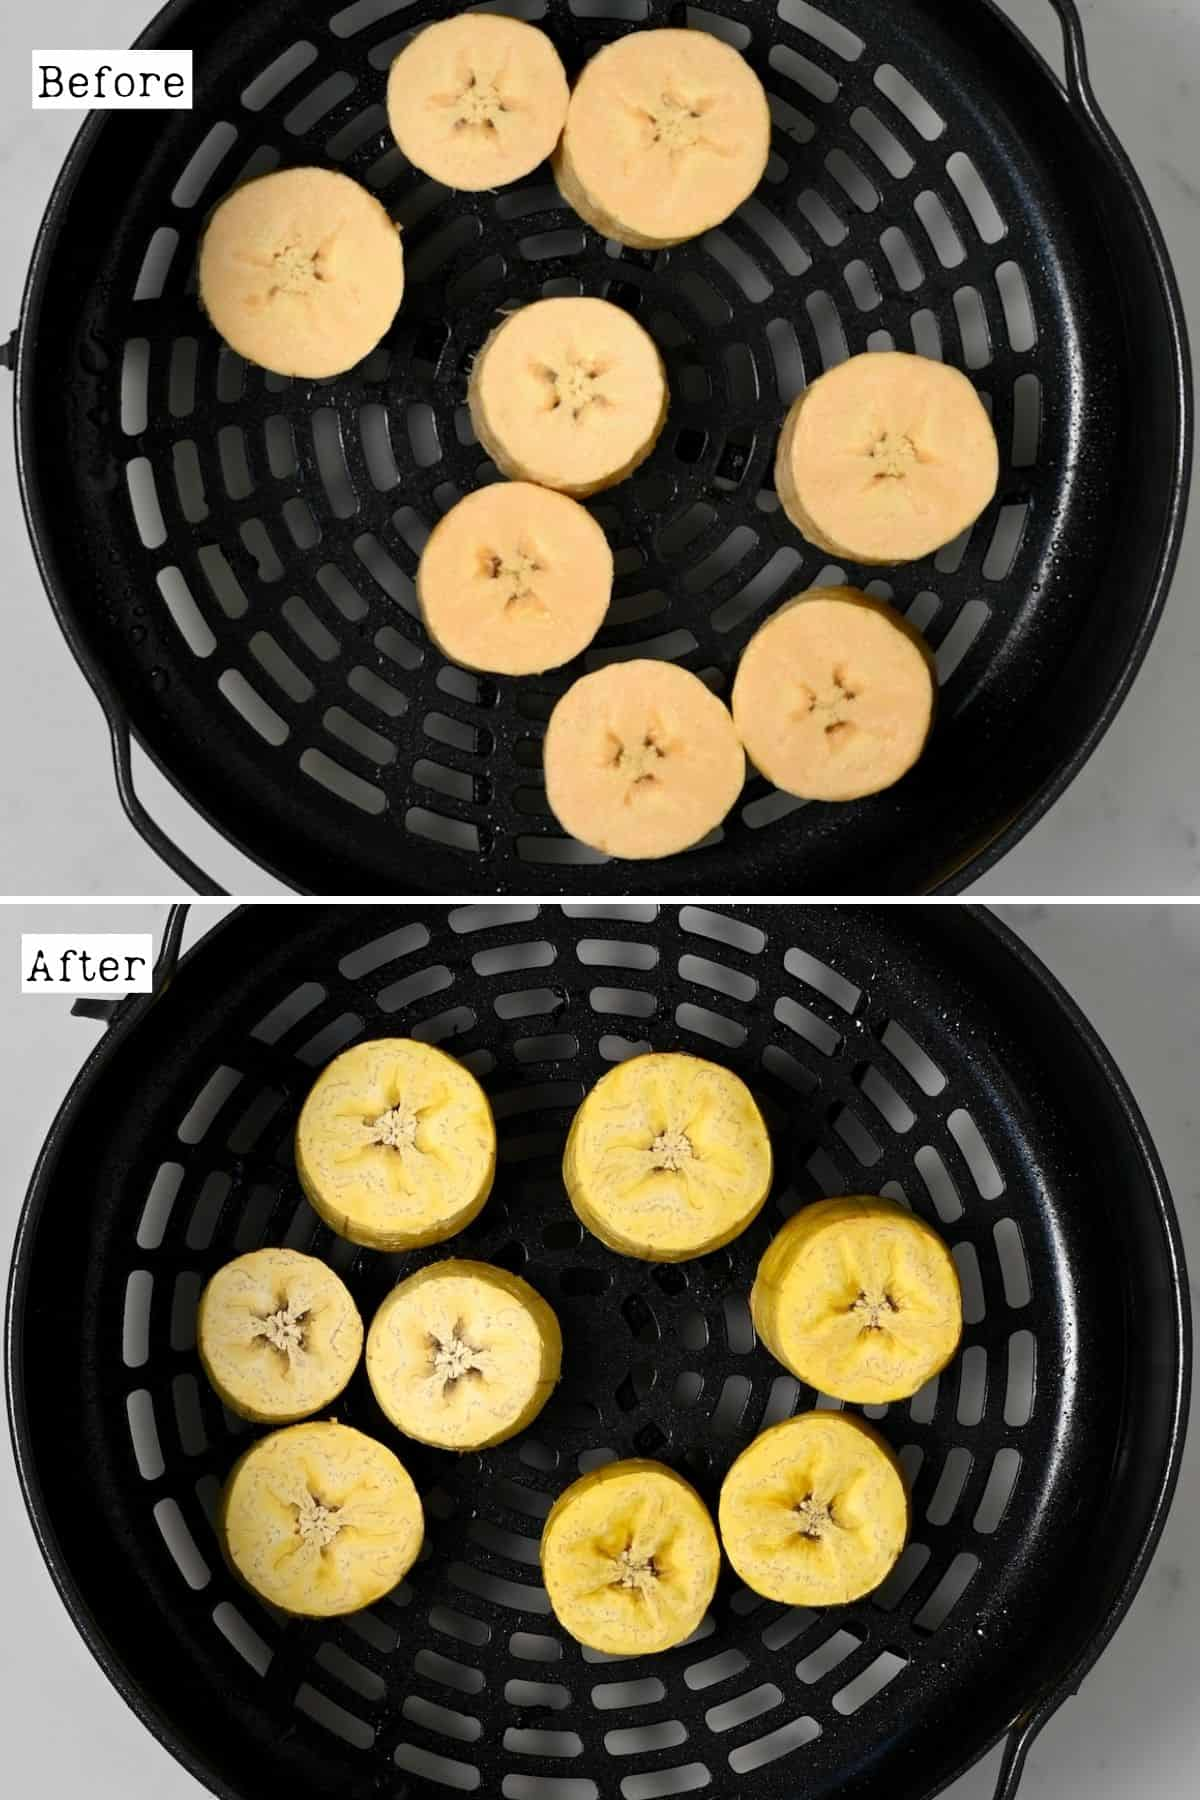 Before and after baking plantains